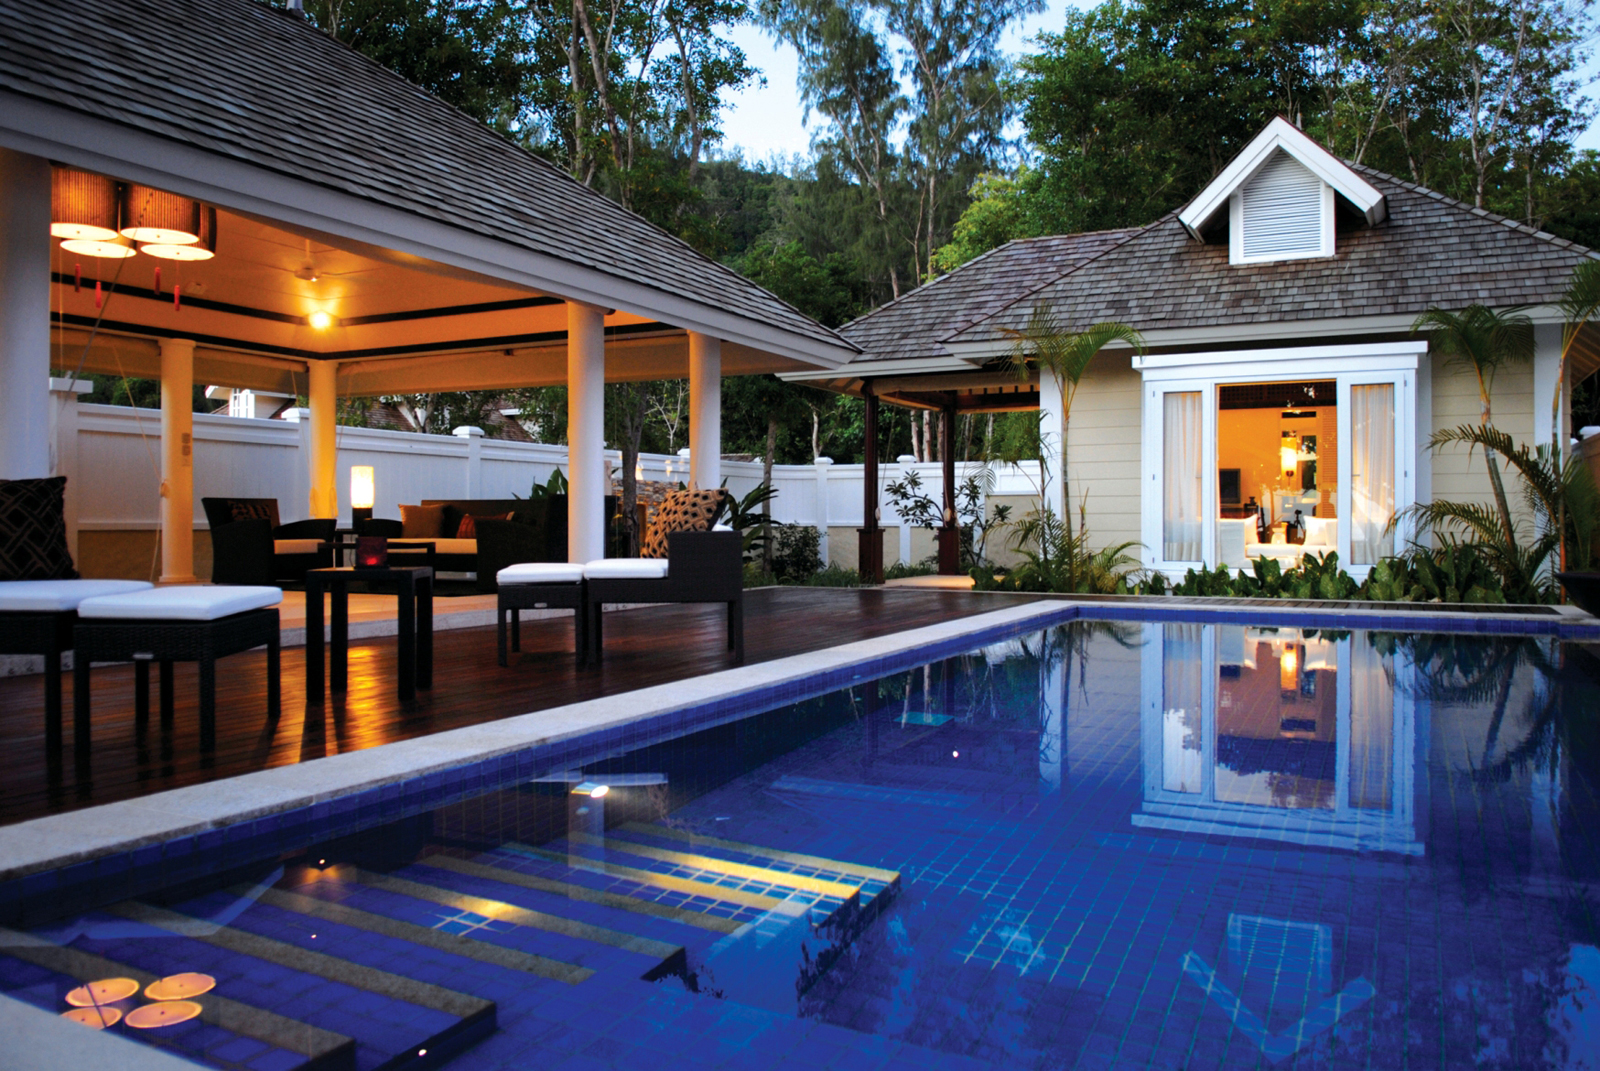 Banyan Tree Hotel Seychelles Pool